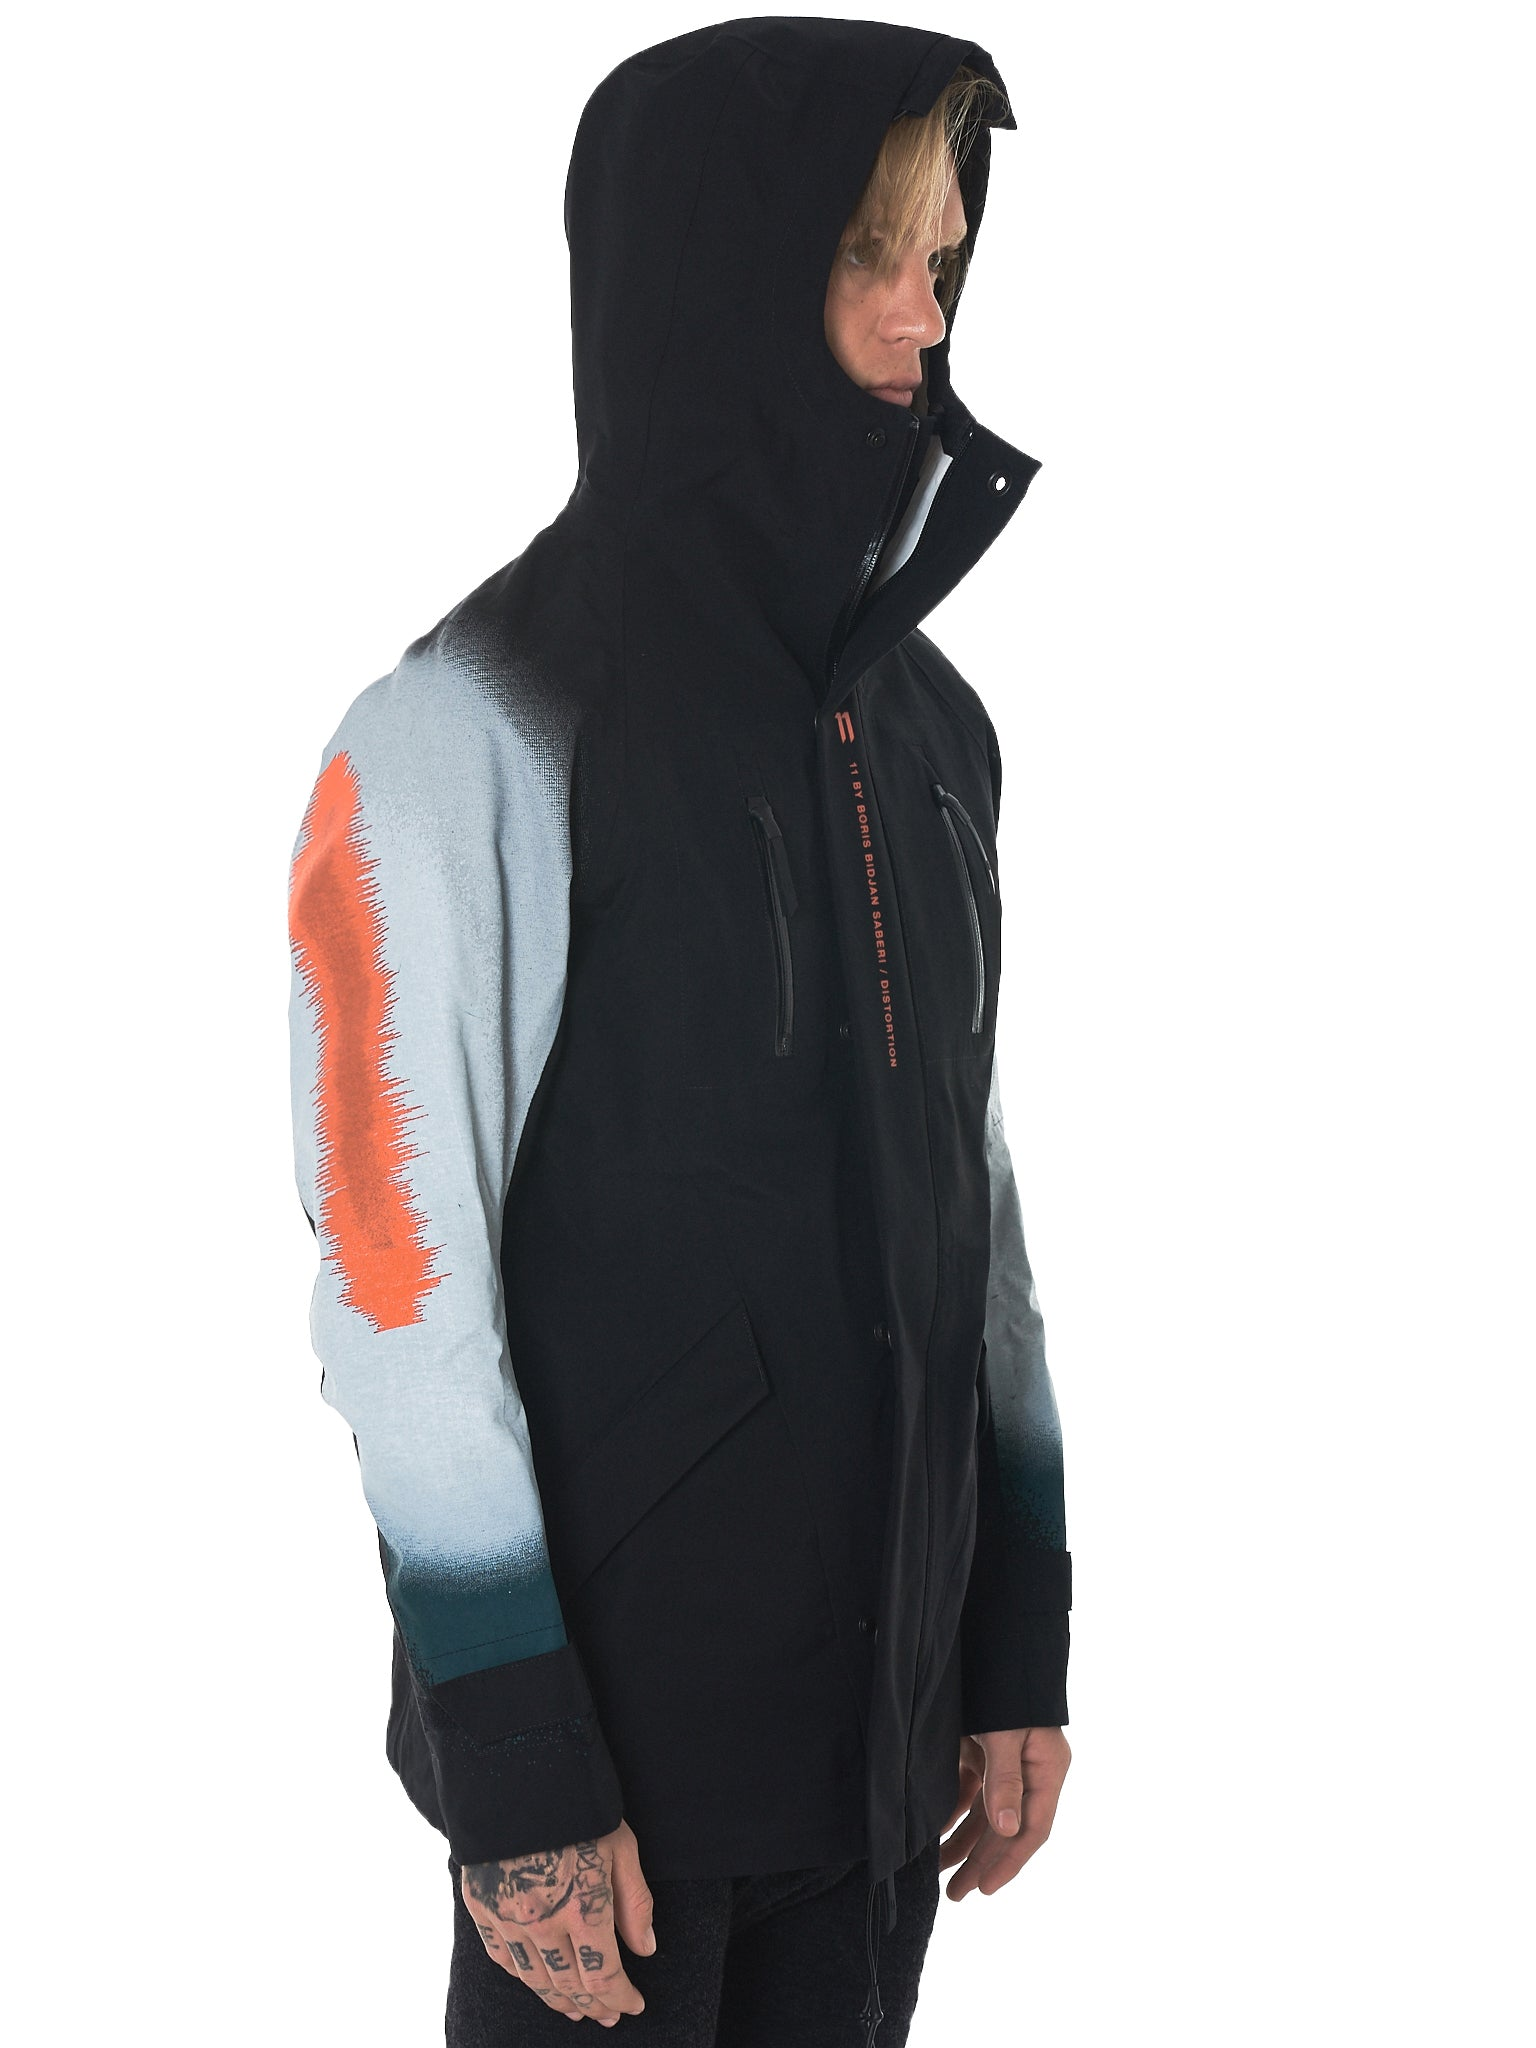 11 By Boris Bidjan Saberi Distortion Hooded Jacket - Hlorenzo Detail 1